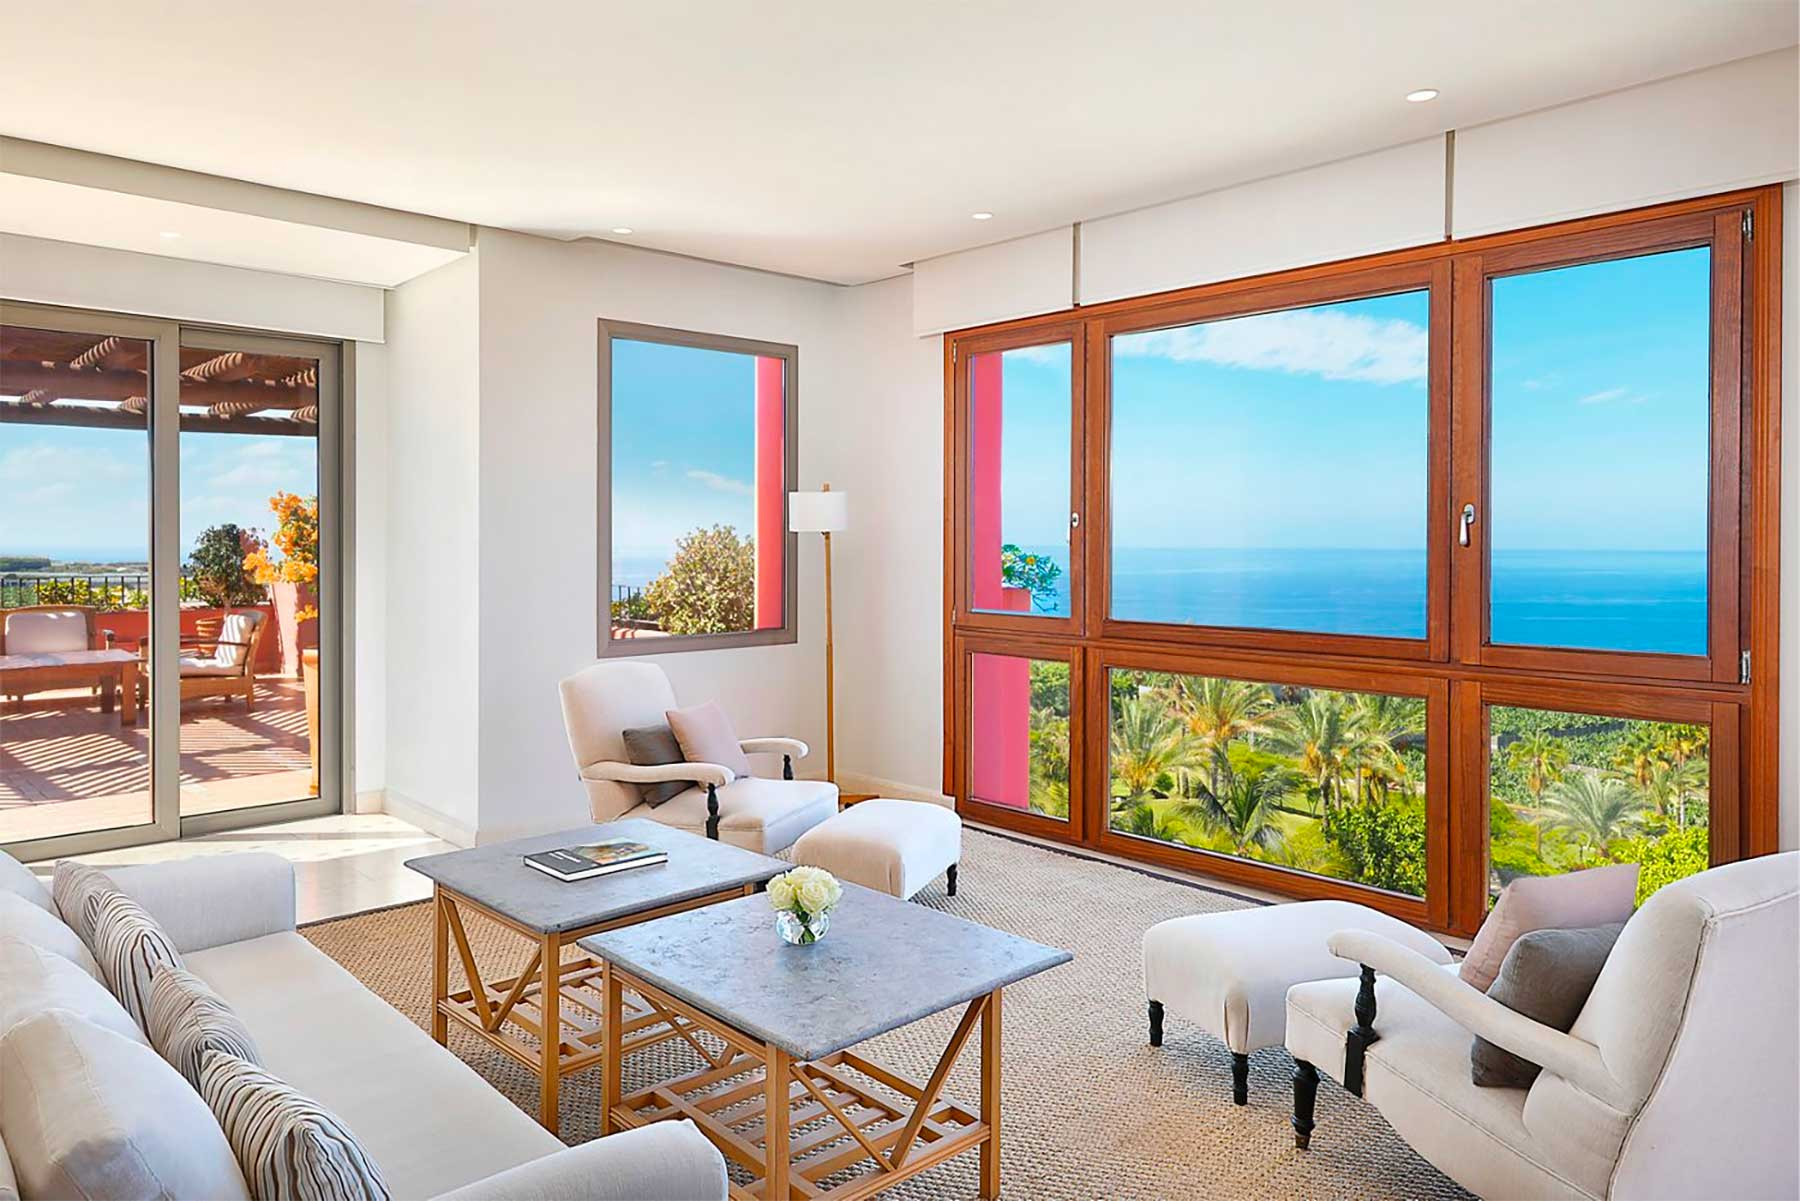 Luxury accommodation in Tenerife, Canary Islands | Photo: Ritz Carlton Abama